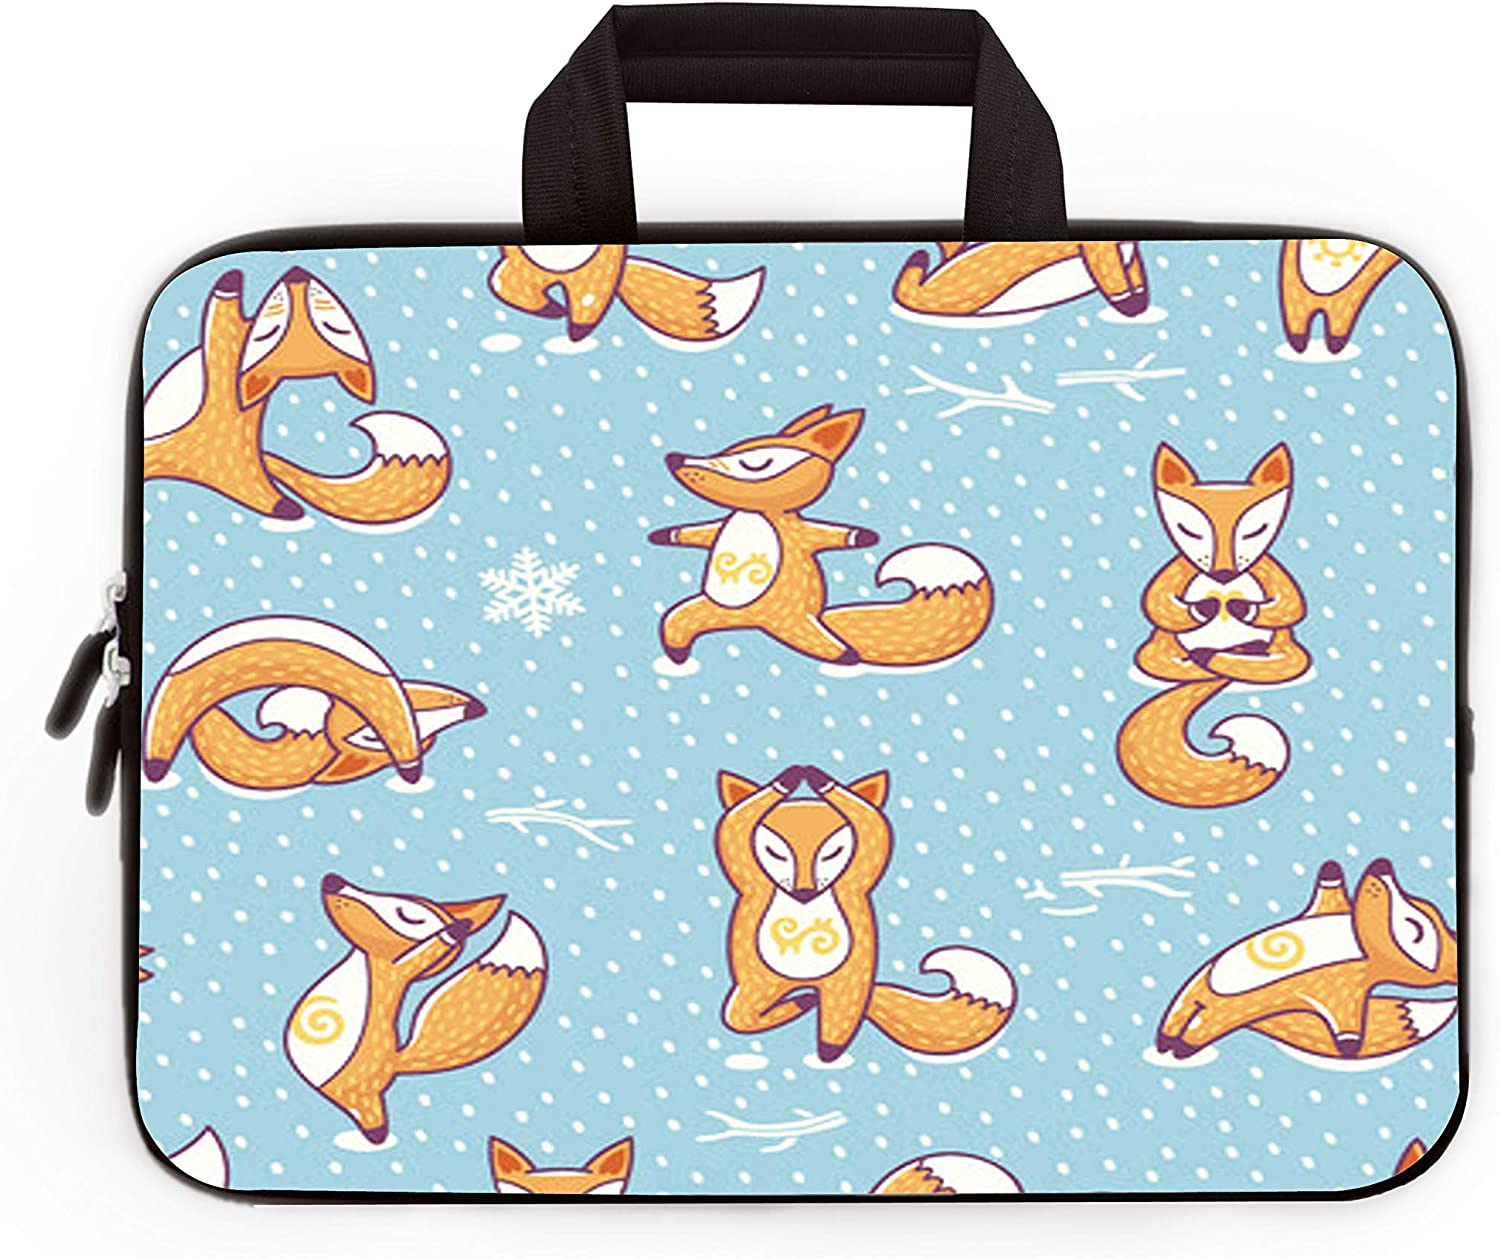 """11"""" 11.6"""" 12"""" 12.1"""" 12.5"""" inch Laptop Carrying Bag Chromebook Case Notebook Ultrabook Bag Tablet Cover Neoprene Sleeve Fit Apple Macbook Air Samsung Google Acer HP DELL Lenovo Asus (Cute Foxs)"""